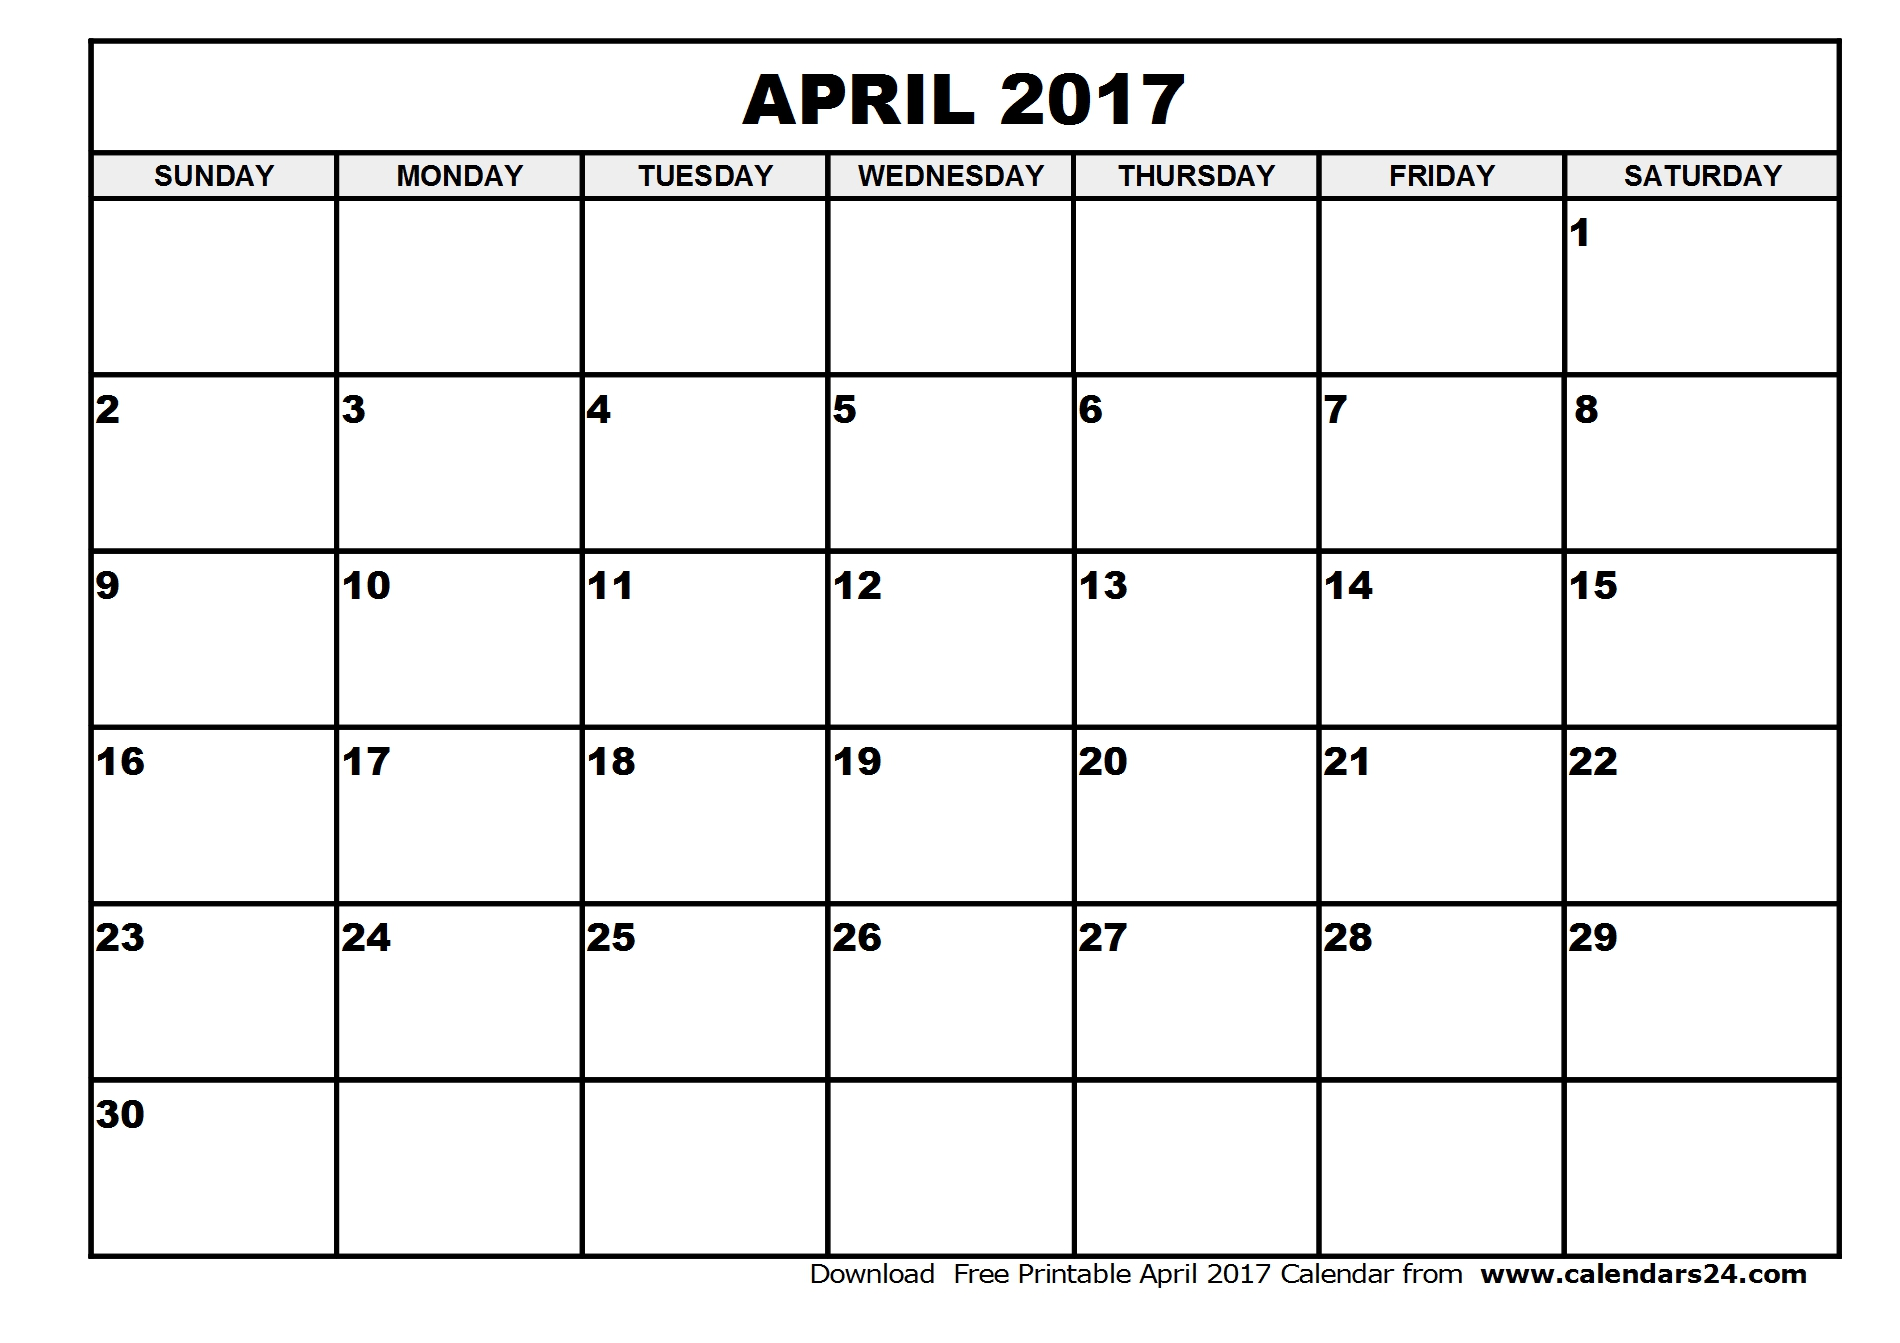 Wonderful Free April 2017 Calendar Printable